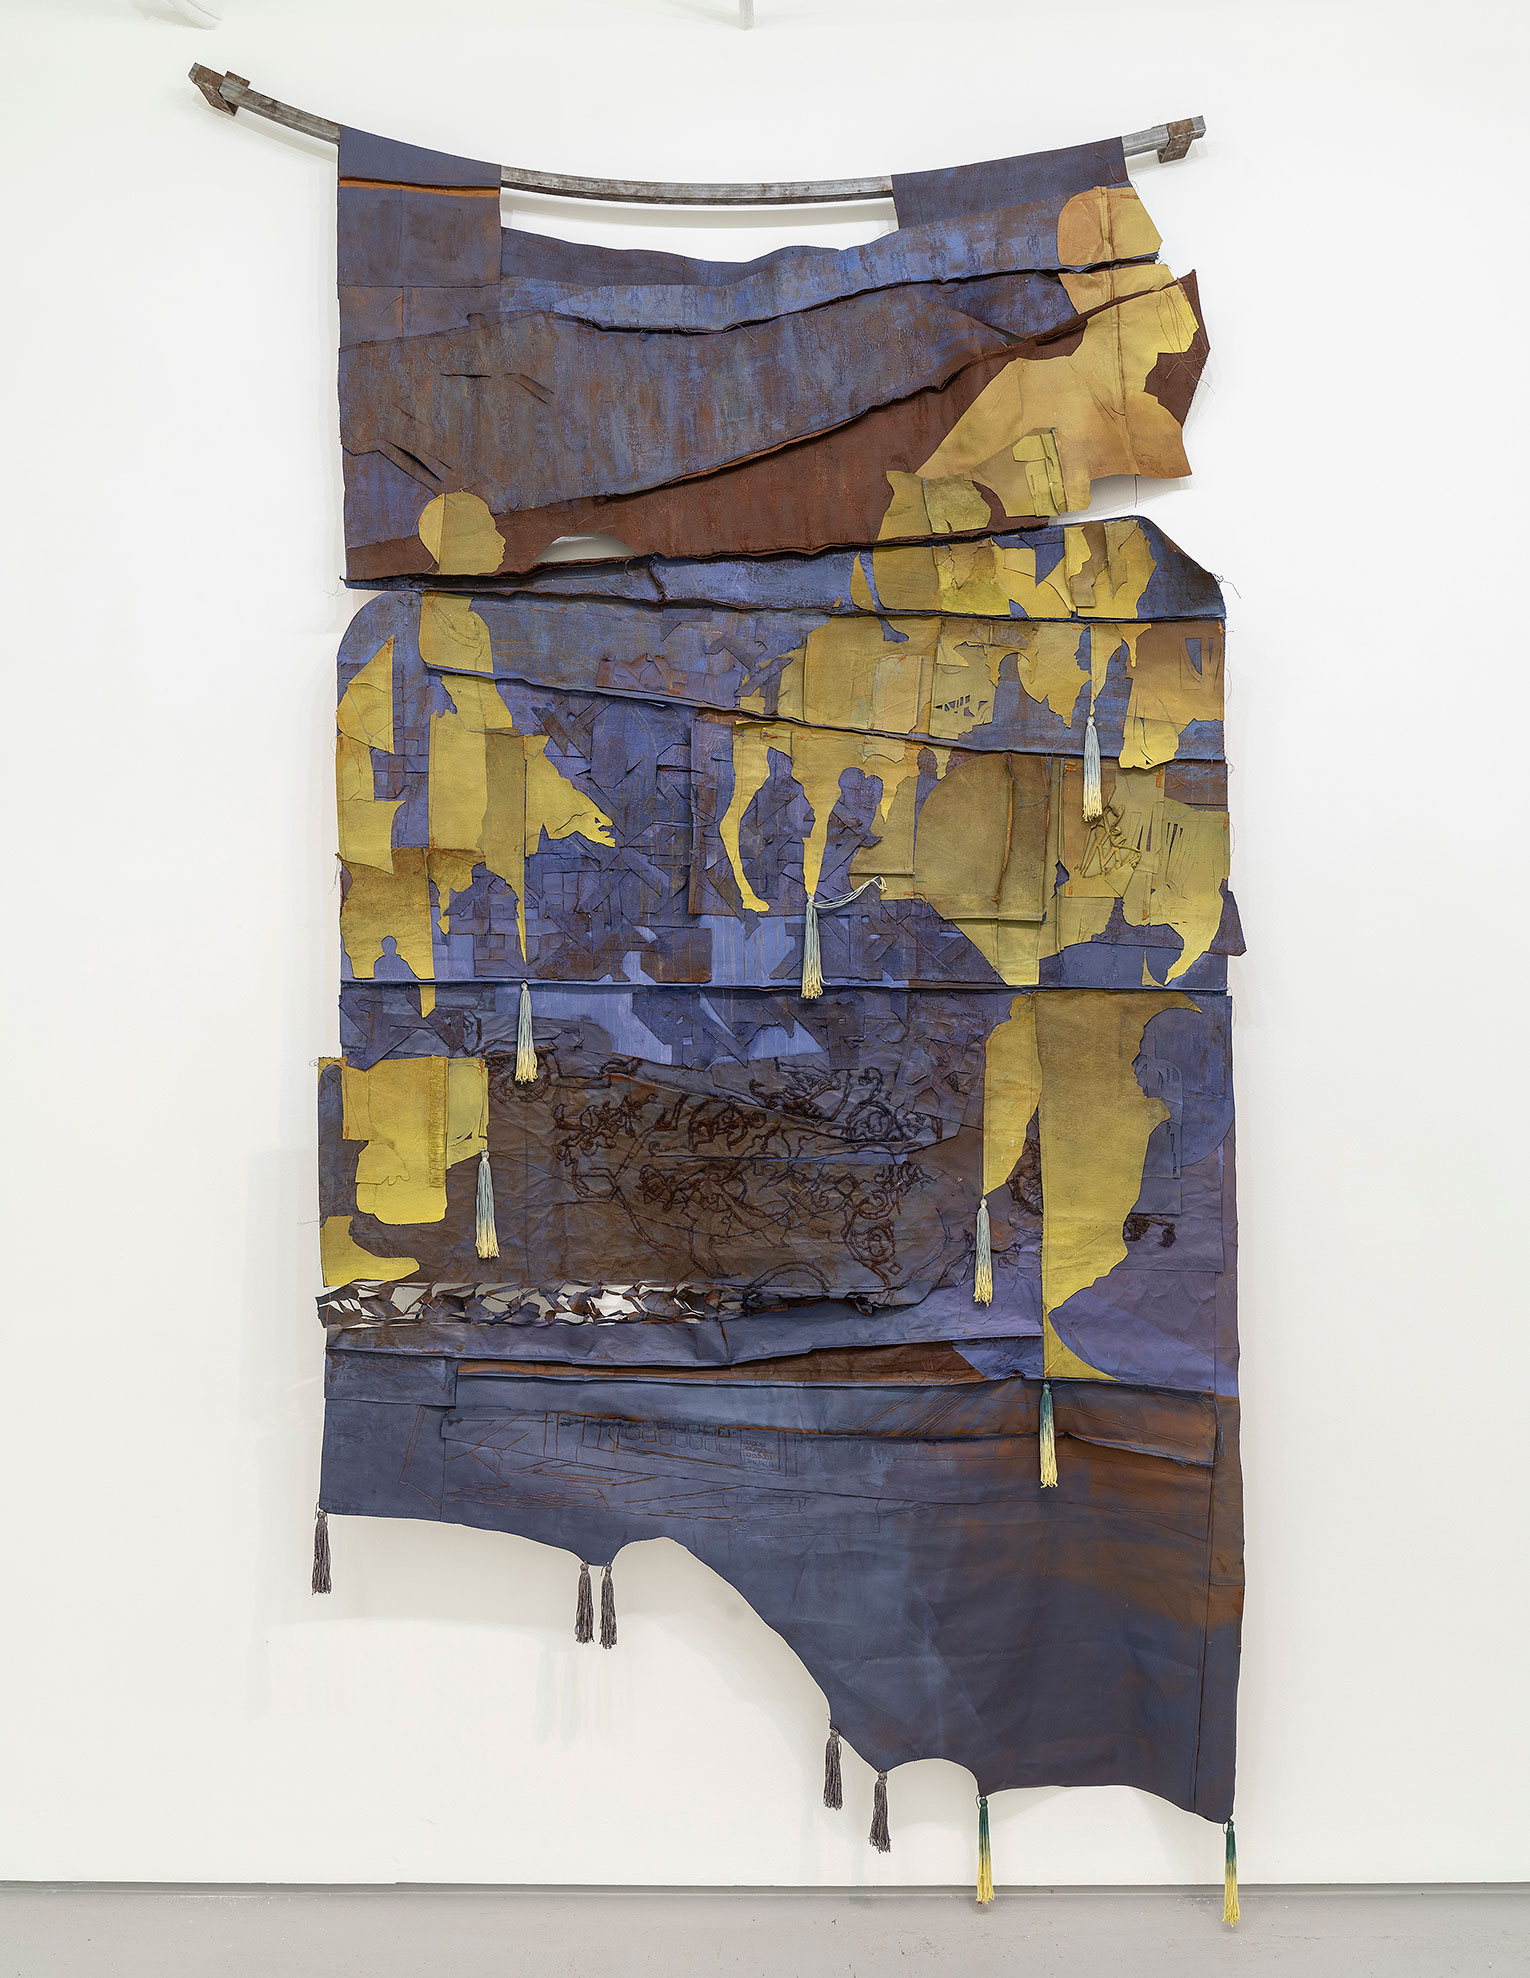 <b>Title:</b>Dust to Rust<br /><b>Year:</b>2020<br /><b>Medium:</b>Hand-dyed cotton, Copper<br /><b>Size:</b>250 x 145 cm